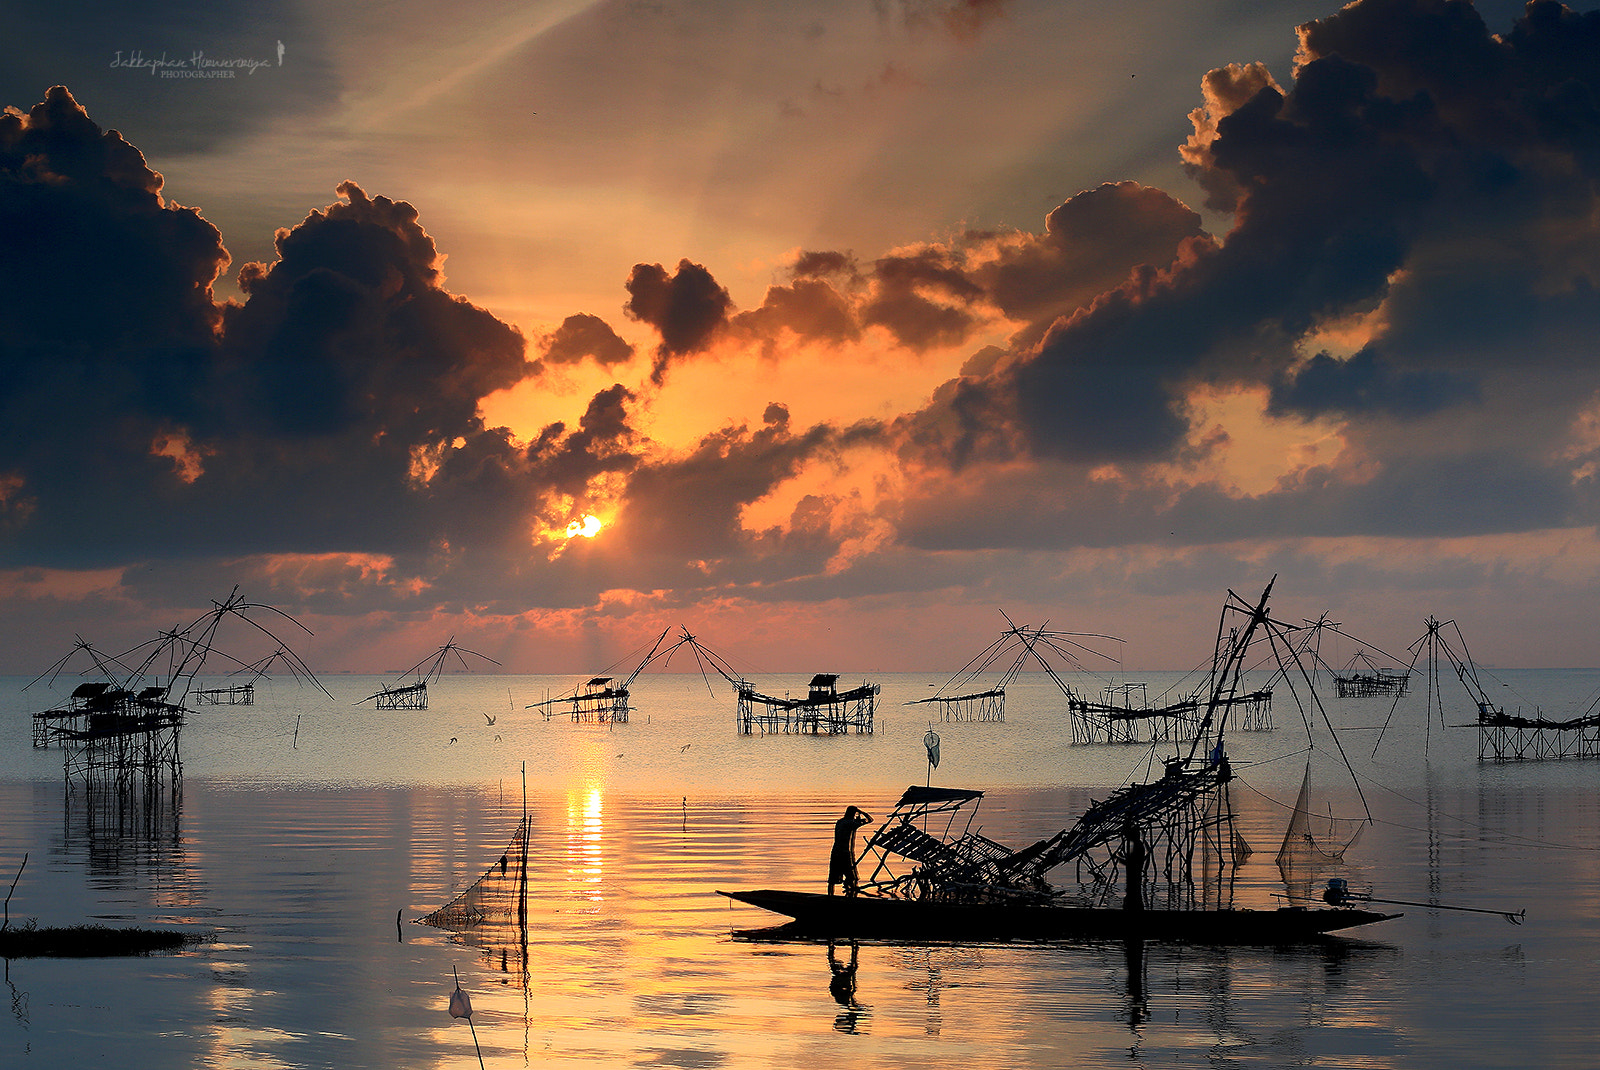 Photograph Sunrise by Jakkaphan Hirunviriya on 500px